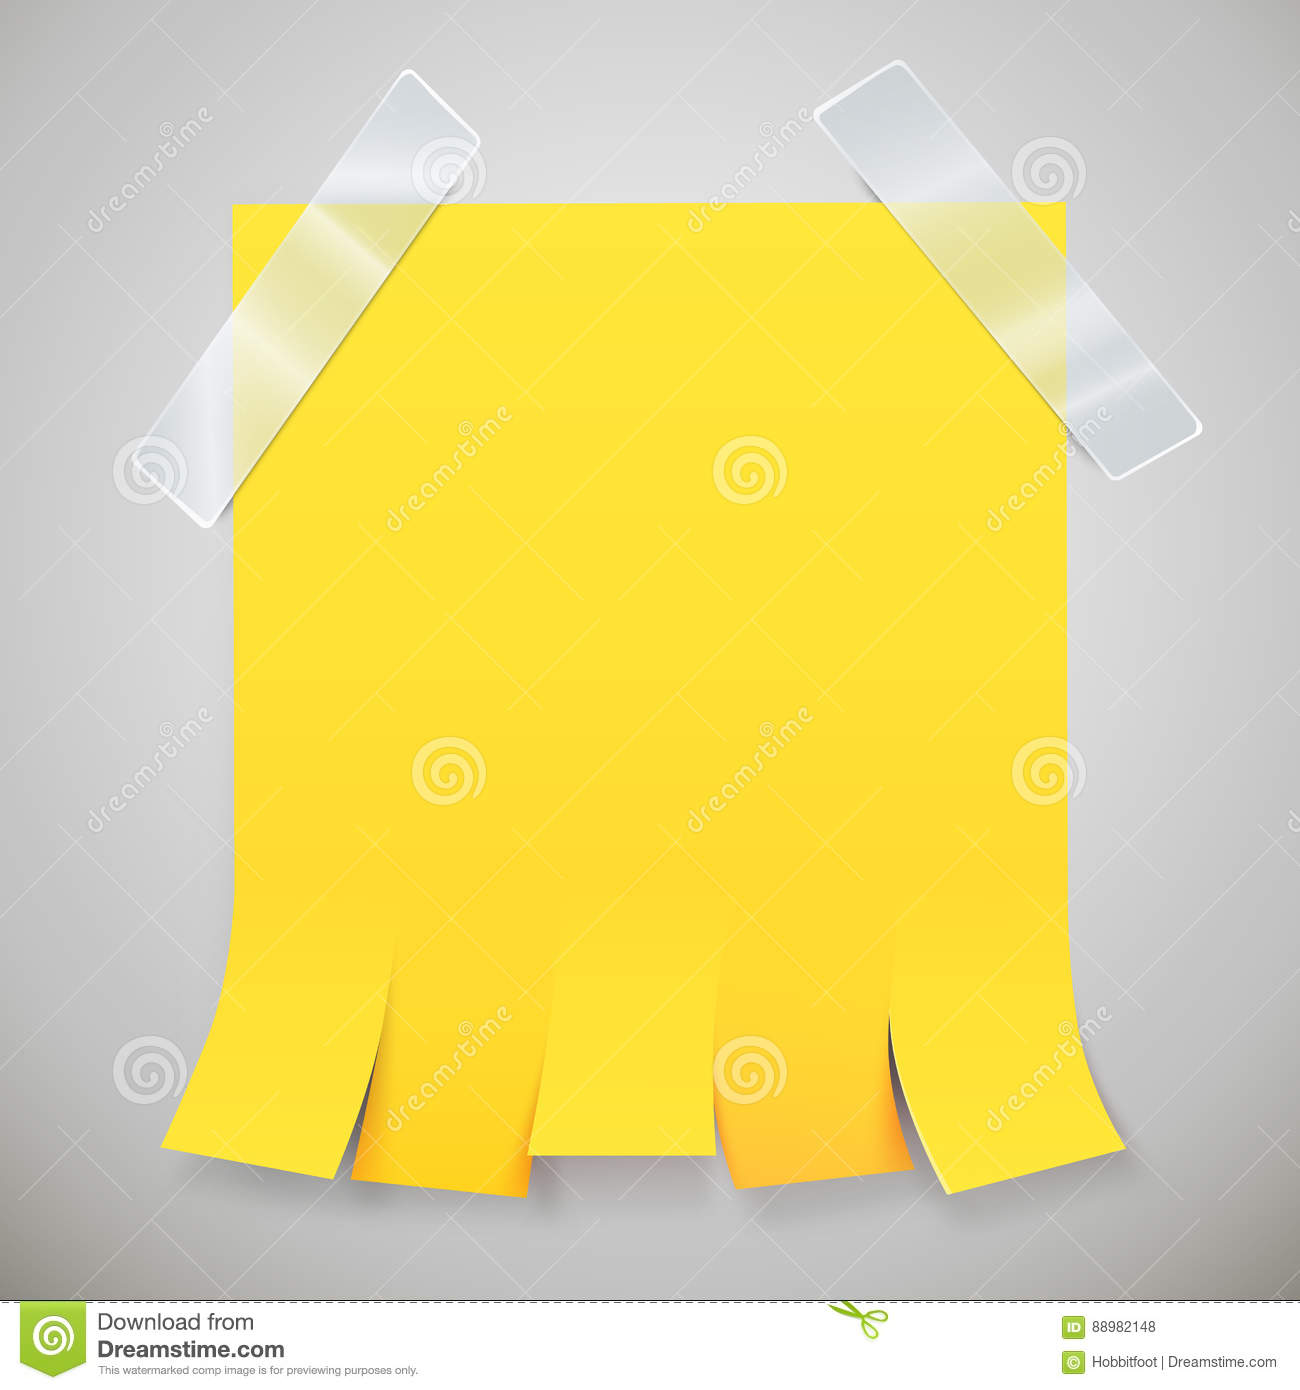 blank yellow advertisement with tear off tabs and adhesive tape